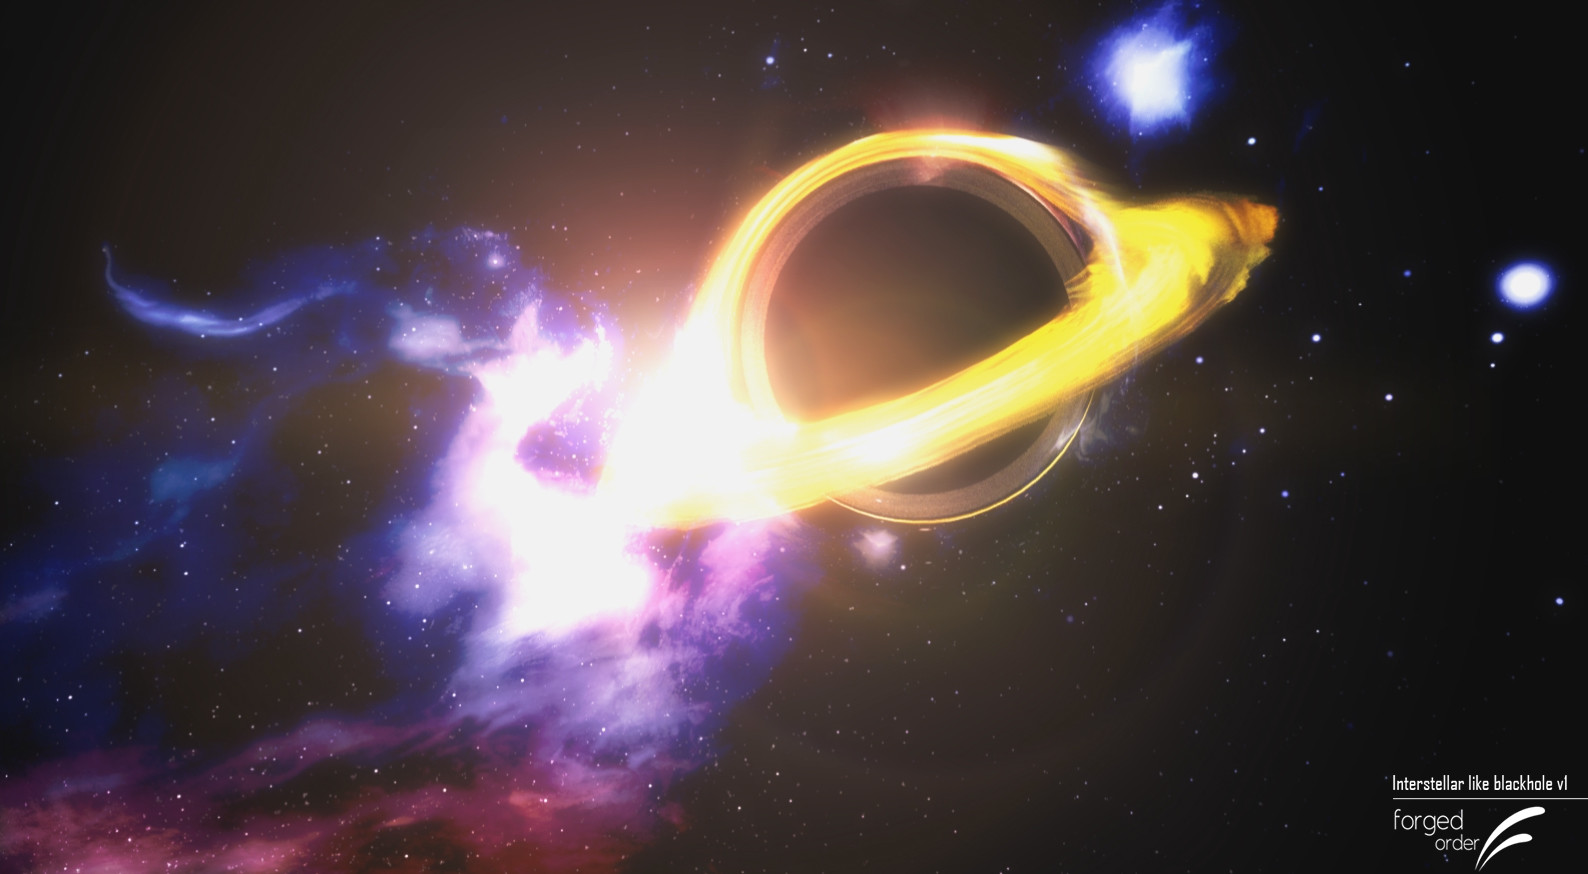 Interstellar Black Hole Effect with V-Ray and gravitational lensing